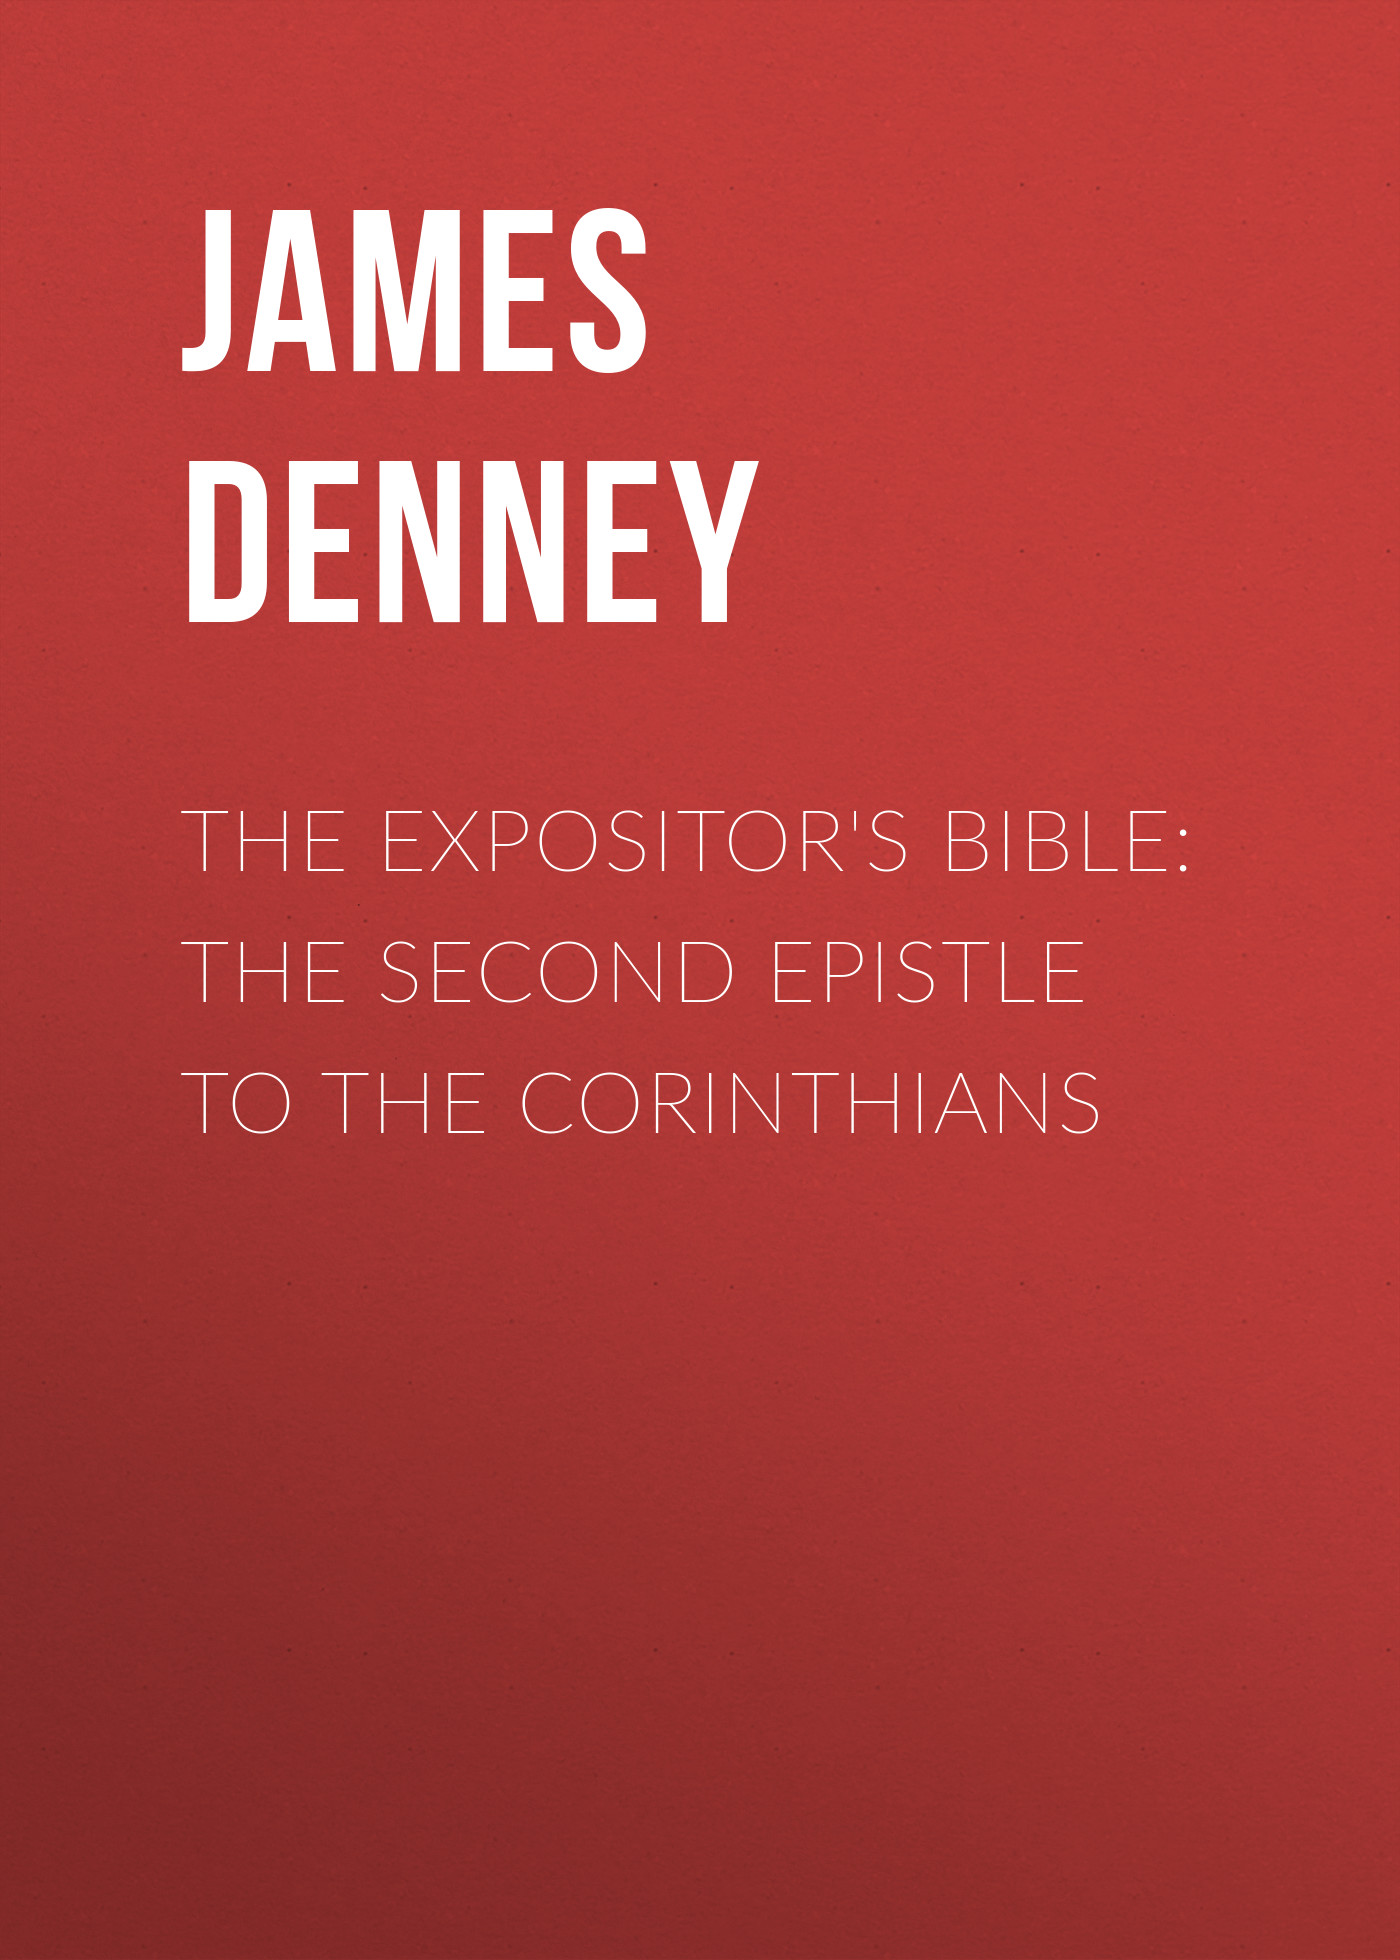 James Denney The Expositor's Bible: The Second Epistle to the Corinthians 8 led bathrome bathtub rainfall shower head polished wall mounted swivel mixer taps shower faucets set chrome finish